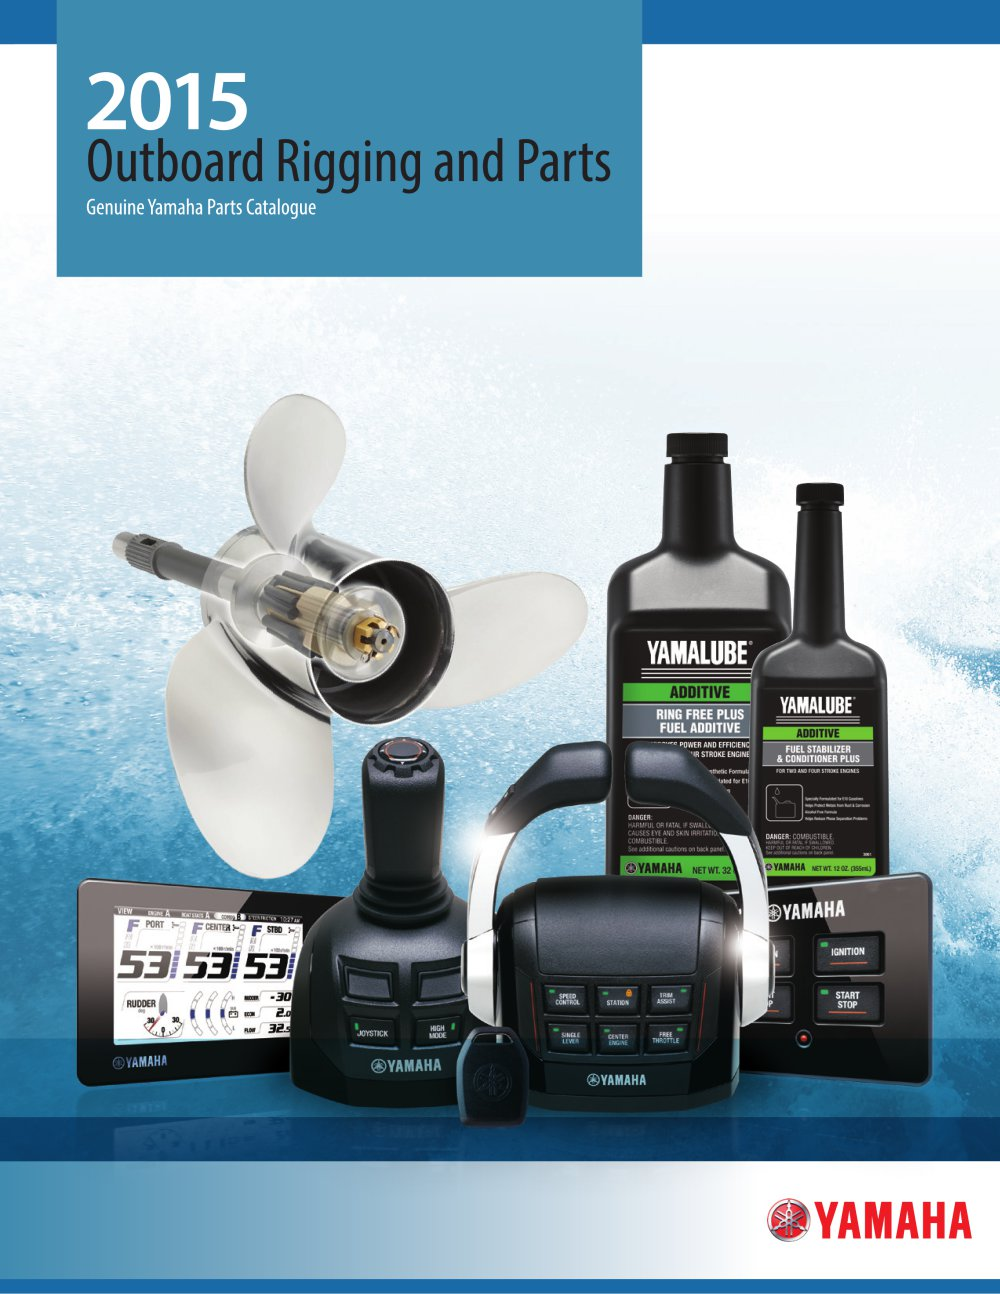 2015 Outboard Rigging And Parts Yamaha Motors Pdf Digital Tachometer Wiring Diagram Free Download 1 341 Pages